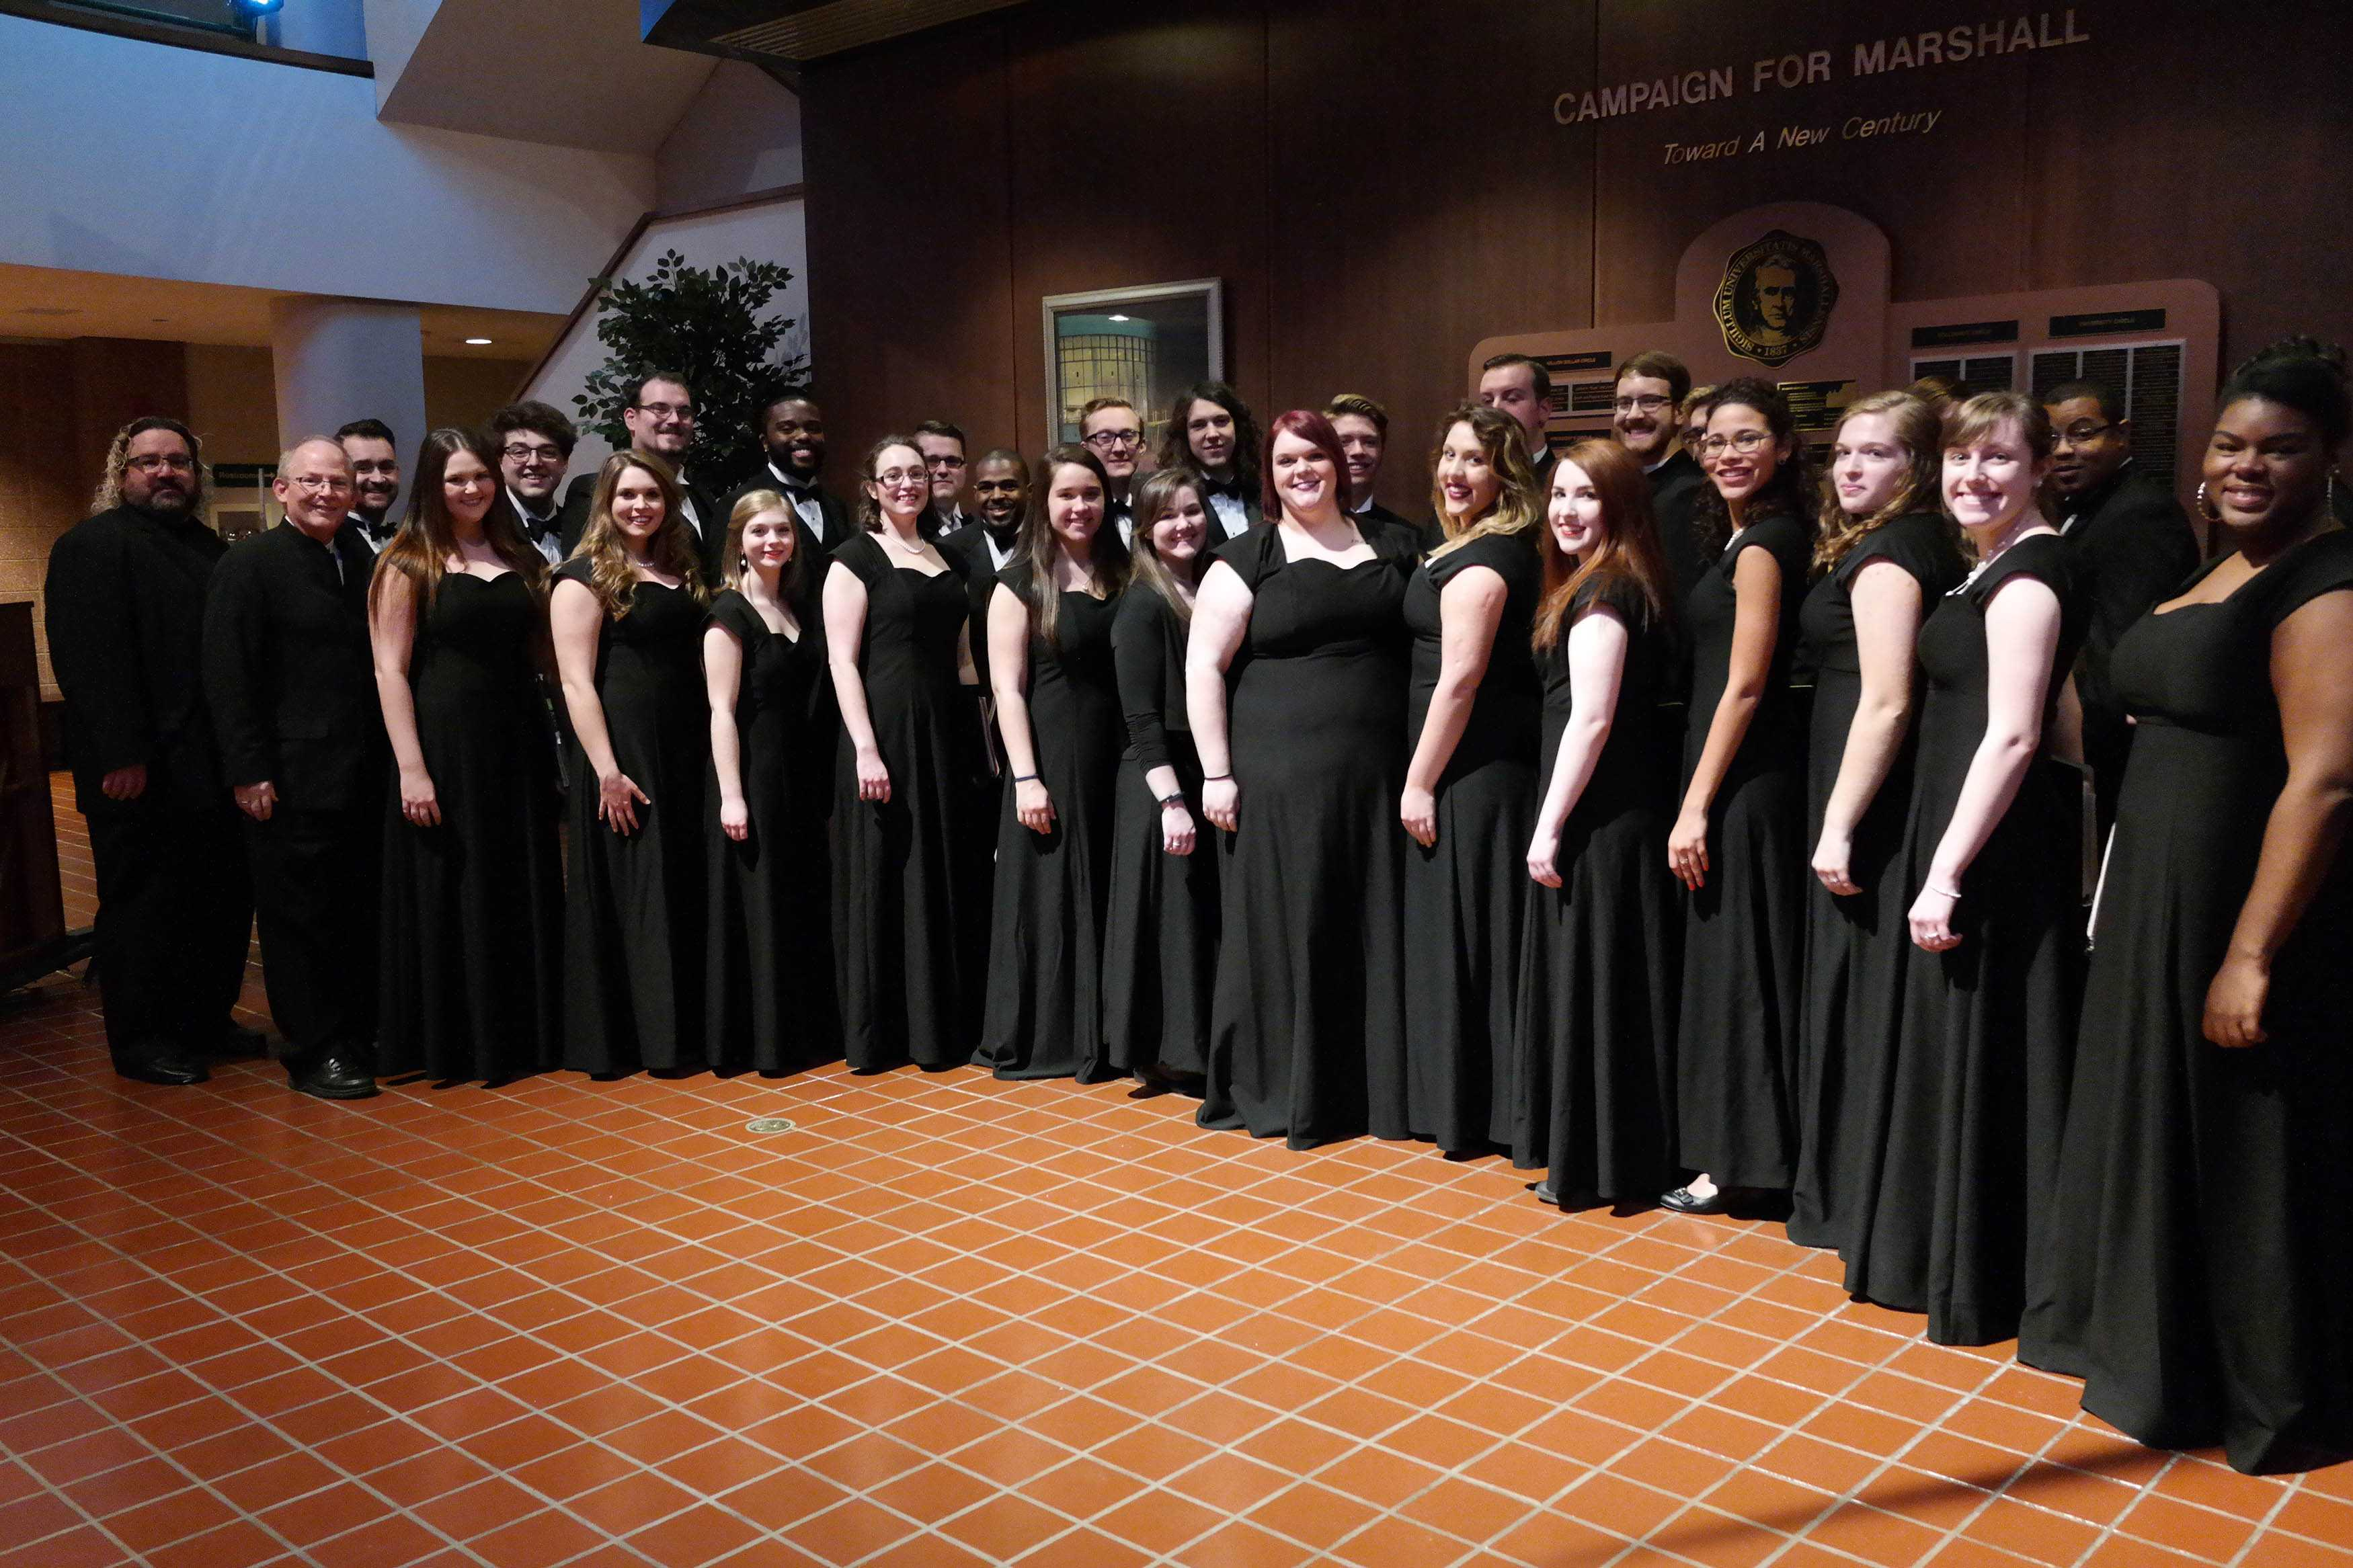 Marshall University's Chamber Choir is photographed in the Joan C. Edwards Playhouse lobby after a performance.